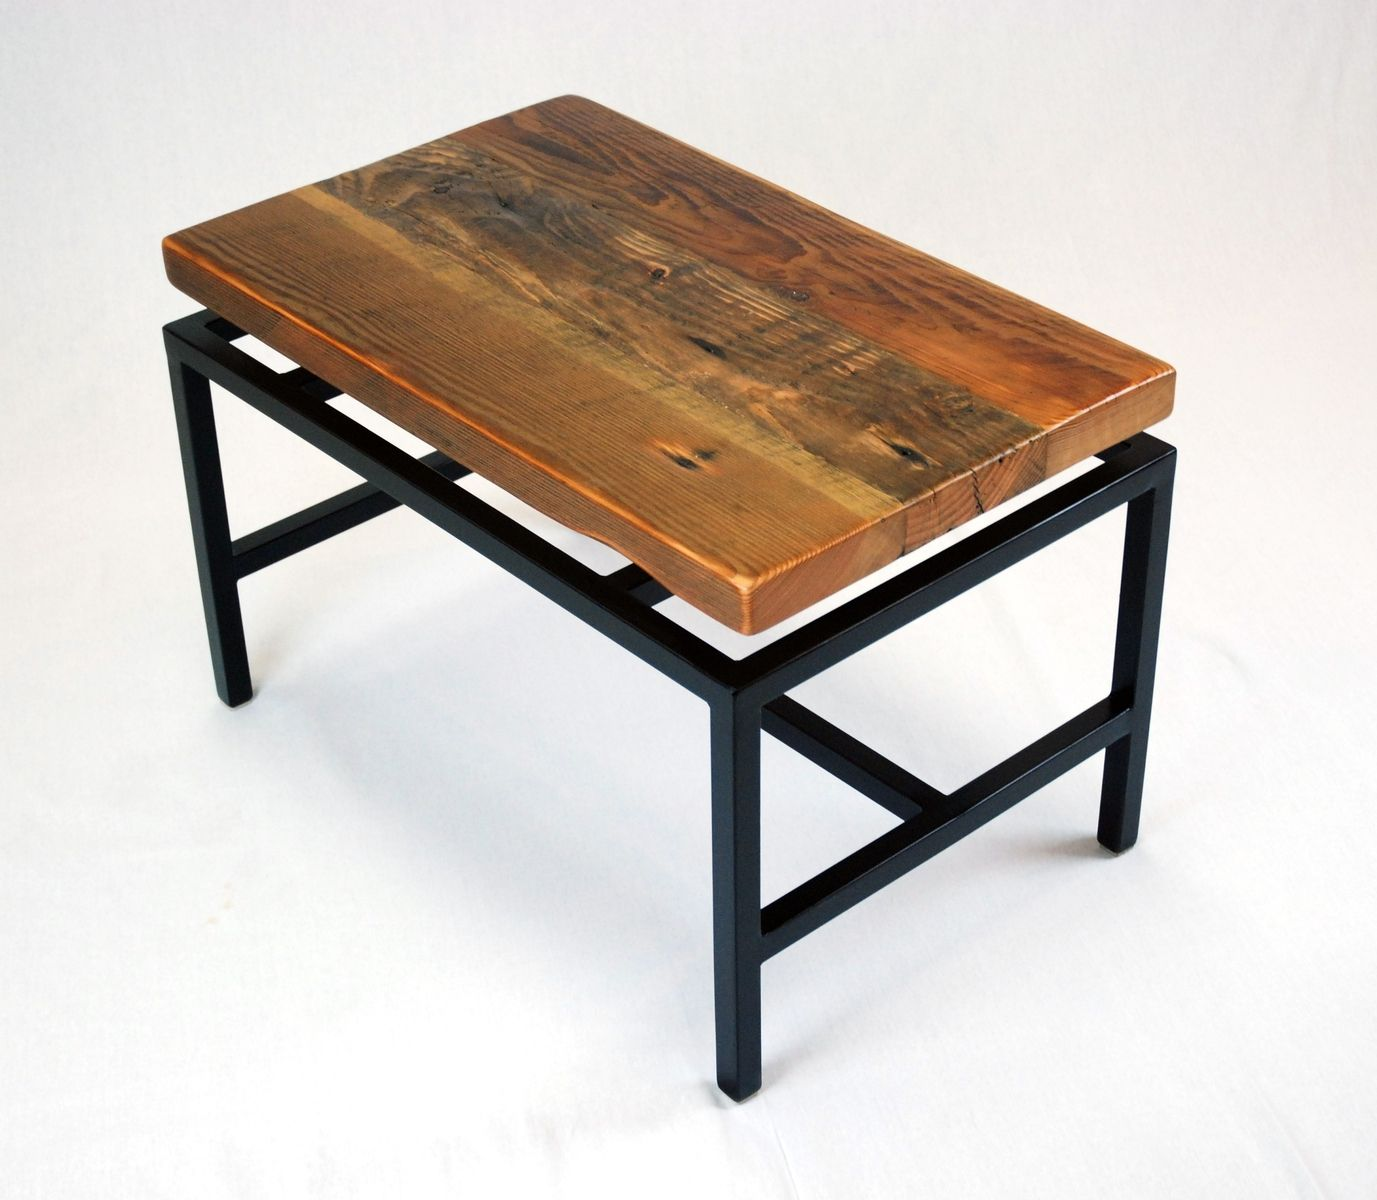 Industrial Coffee Table Images: Handmade Floating Top Industrial Coffee Table In Reclaimed